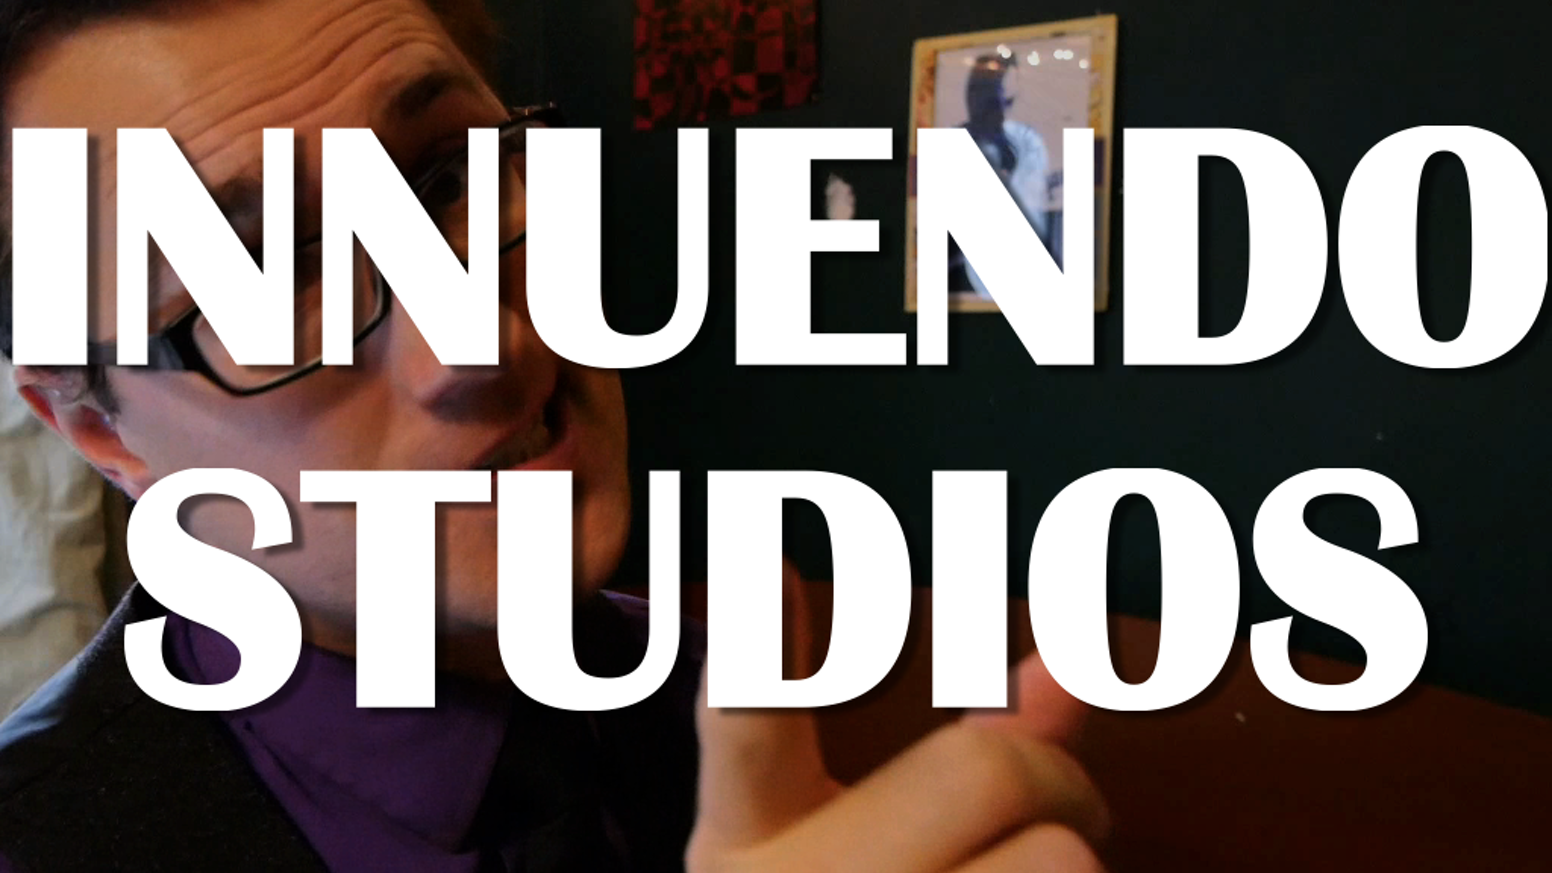 Video Essays By Innuendo Studios By Ian Danskin  Kickstarter Video Essays By Ian Danskin About Video Games Game Culture And Maybe  Things That Arent Video Games